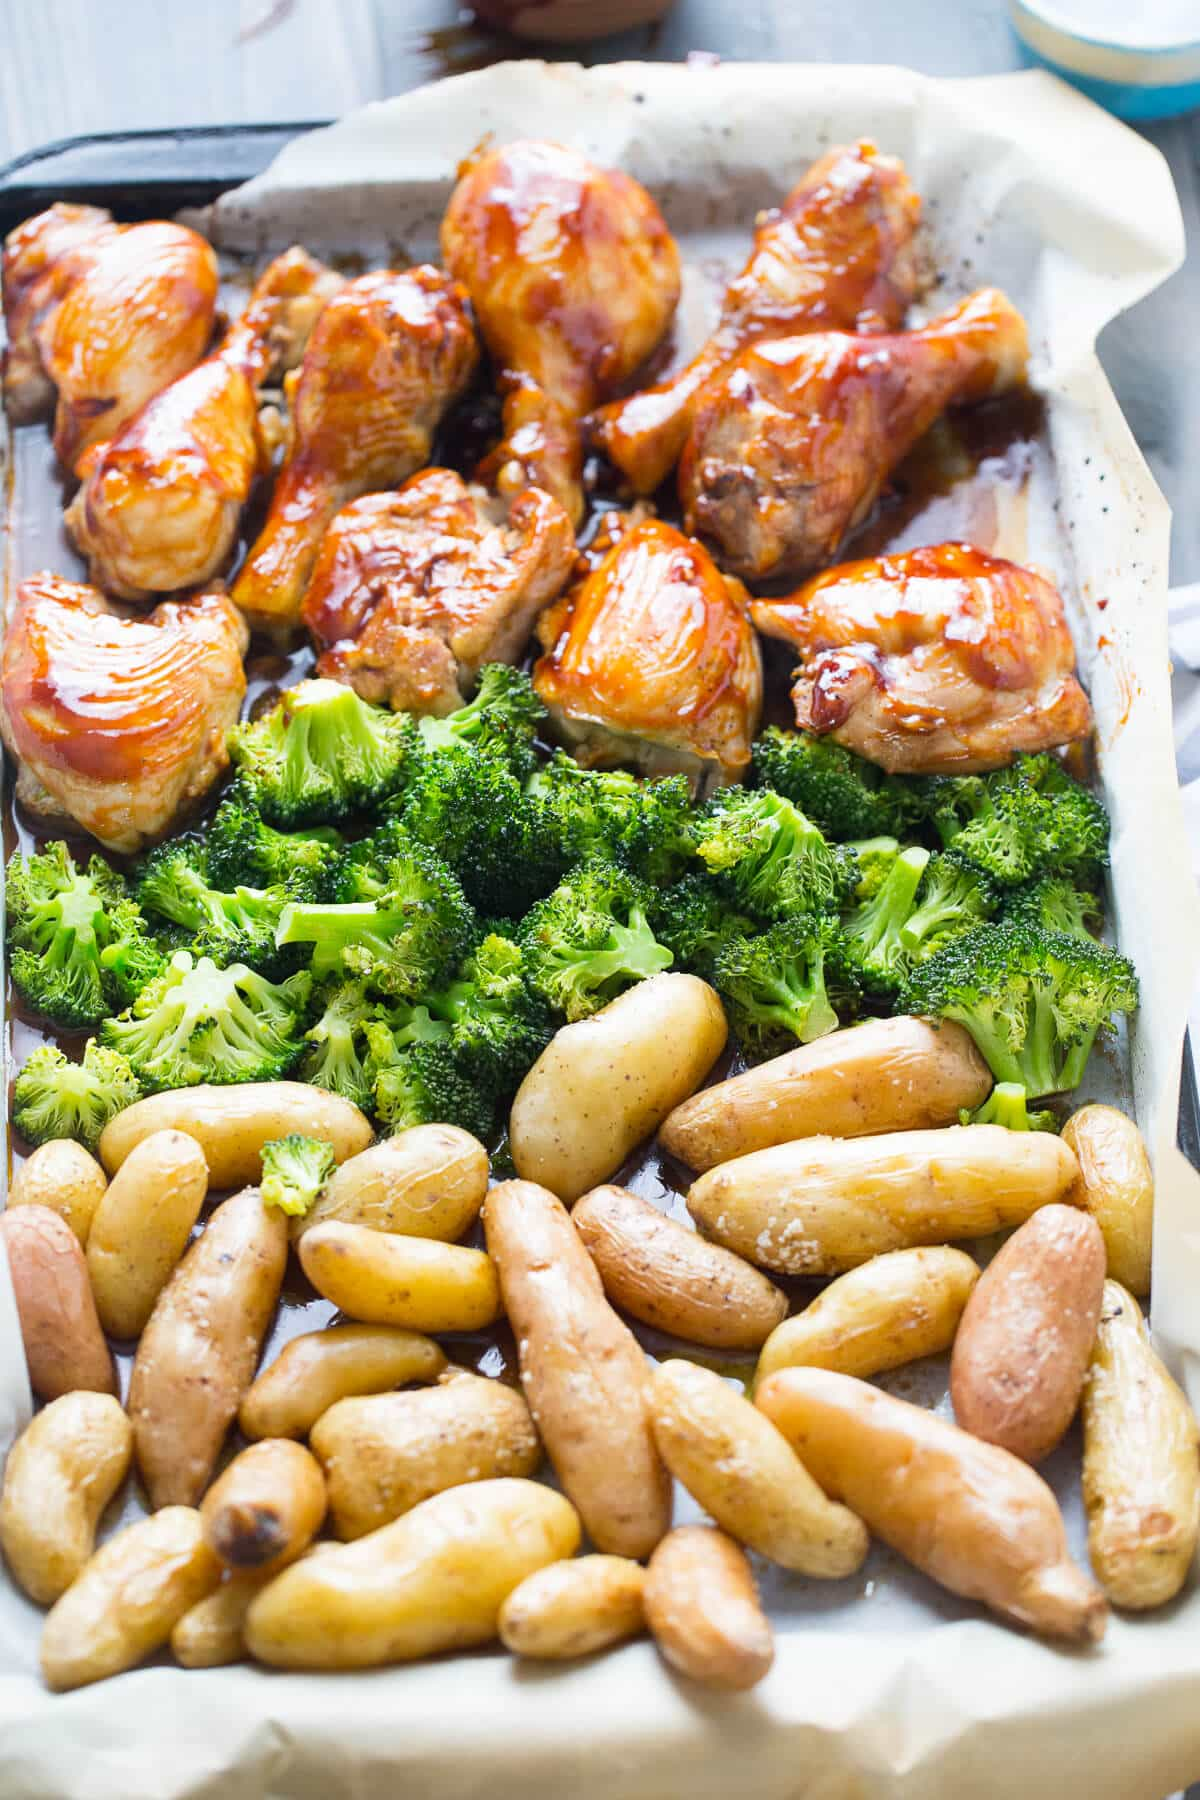 This sheet pan dinner is fantastic! This bourbon chicken recipe is baked with potatoes and broccoli then basted with a bourbon glaze!